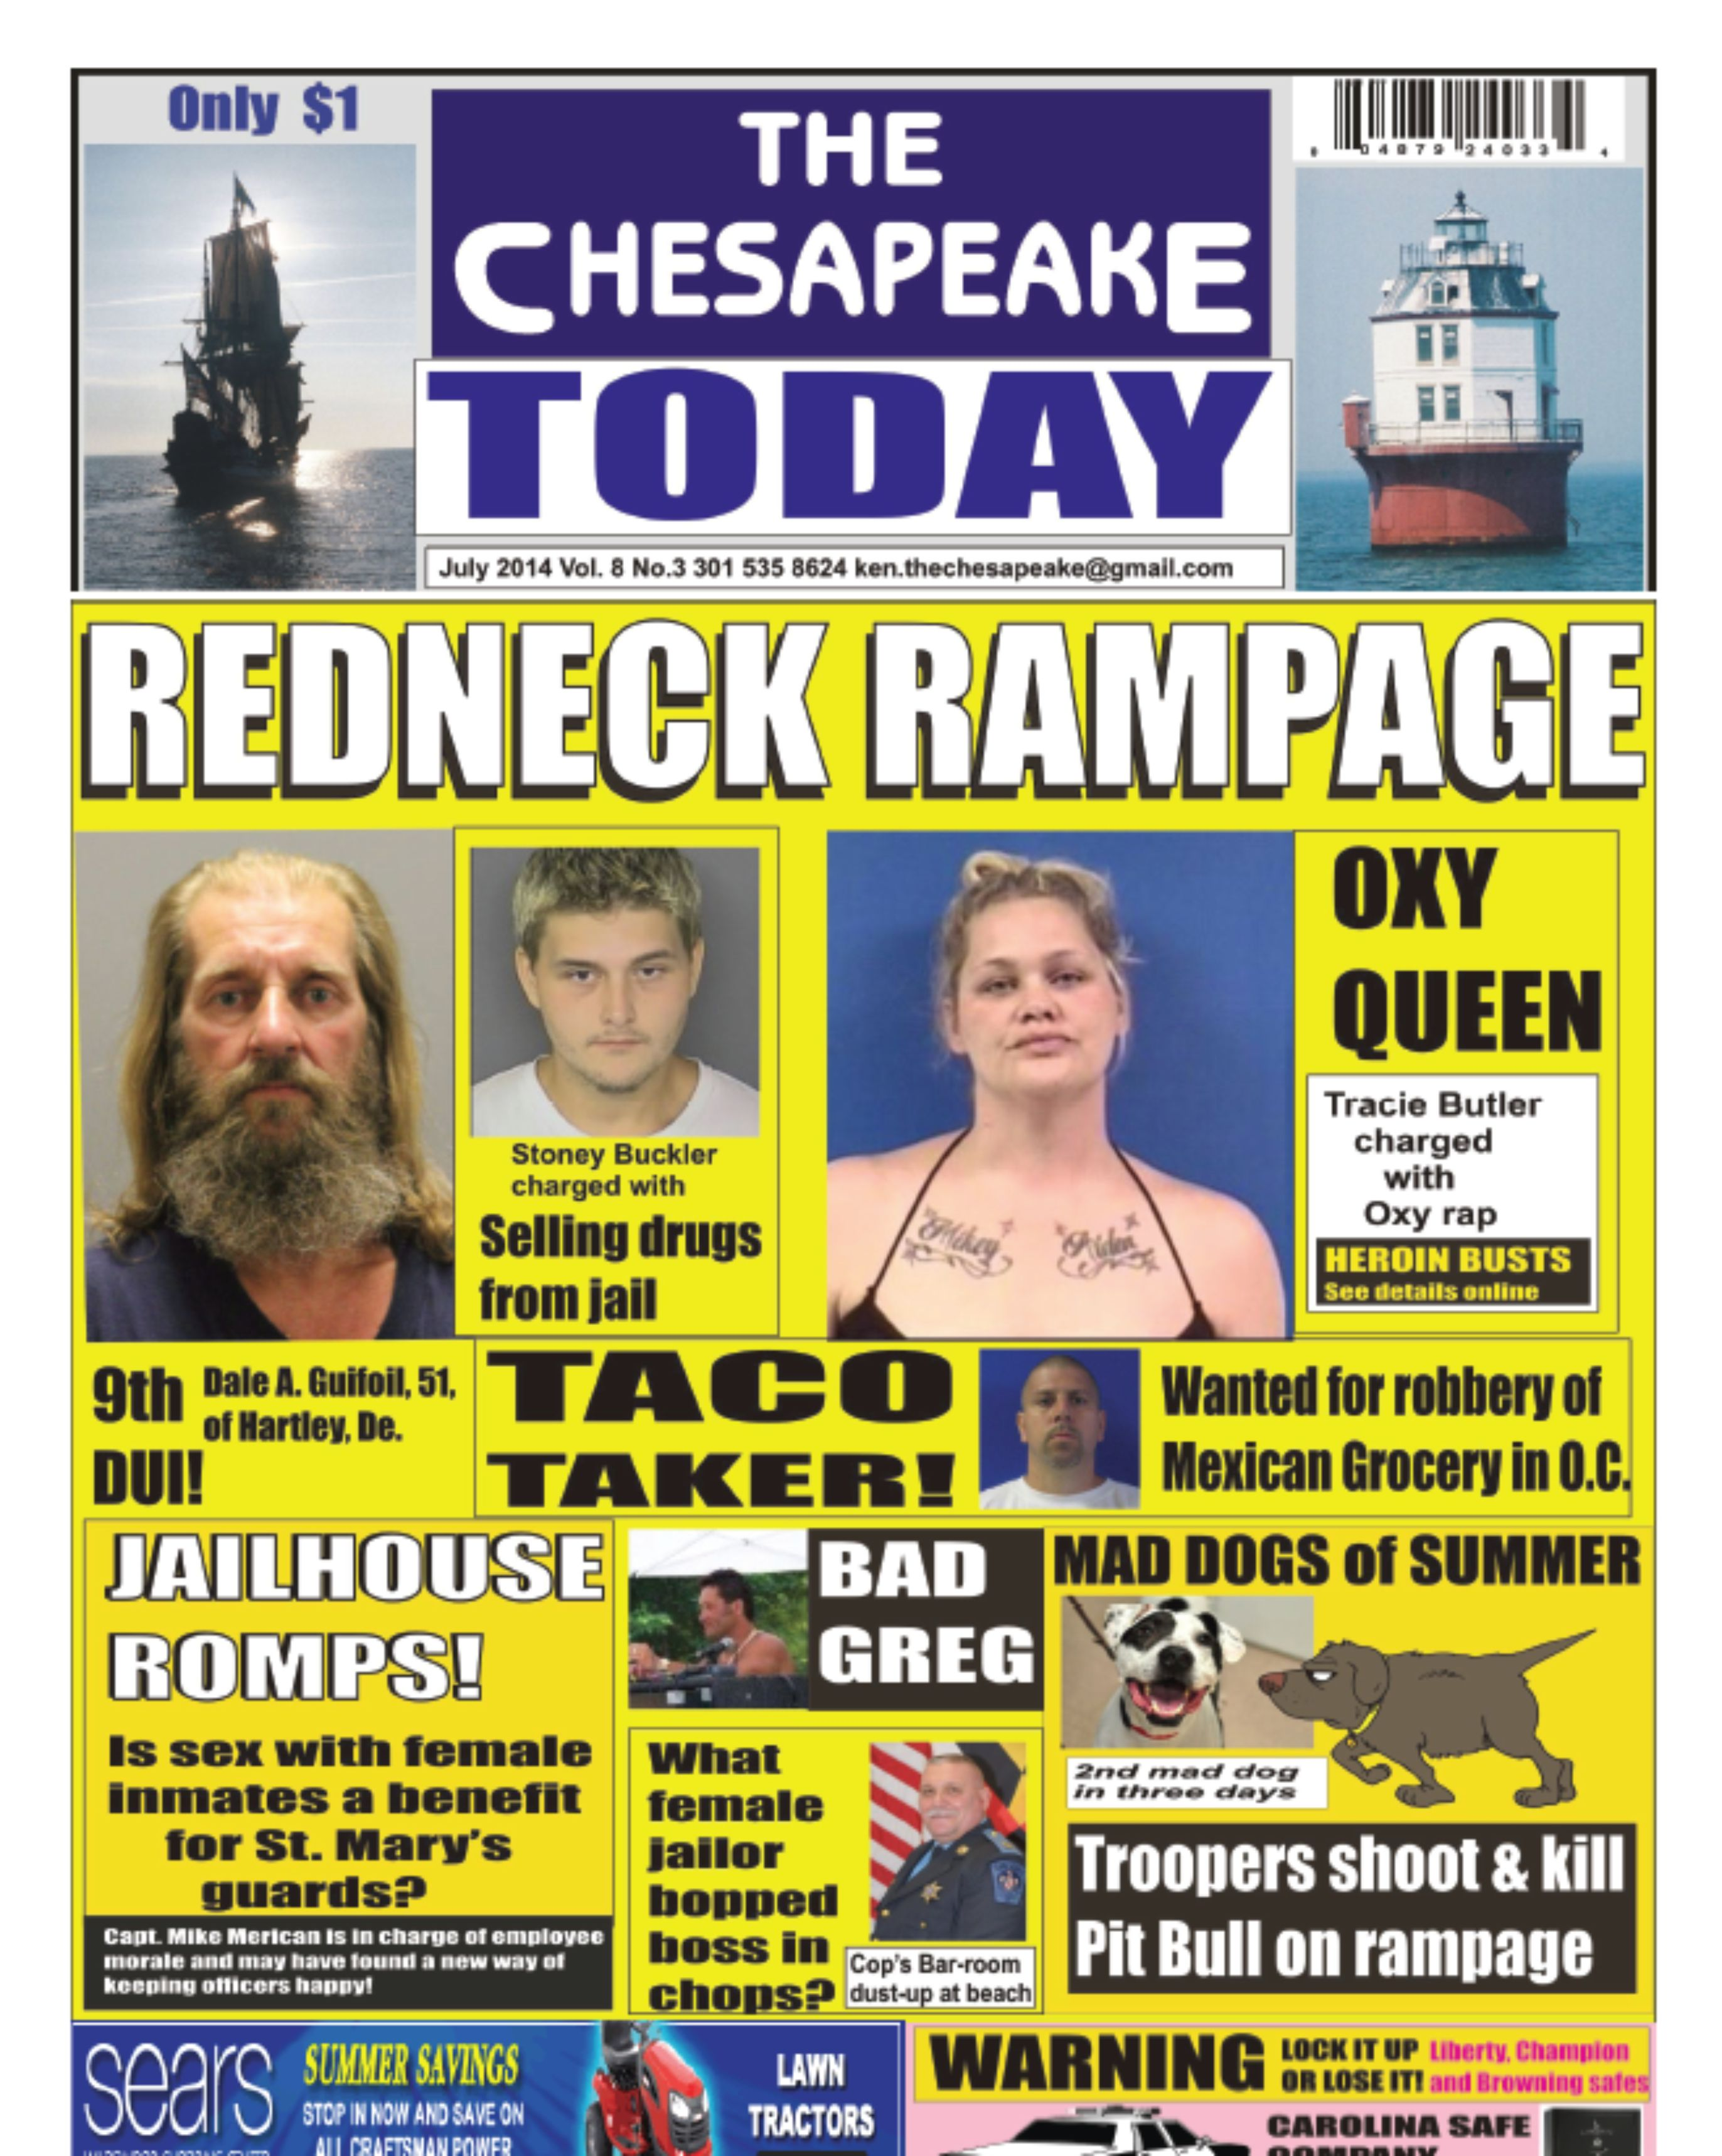 THE CHESAPEAKE TODAY now on newsstands from Glen Burnie to Ocean City